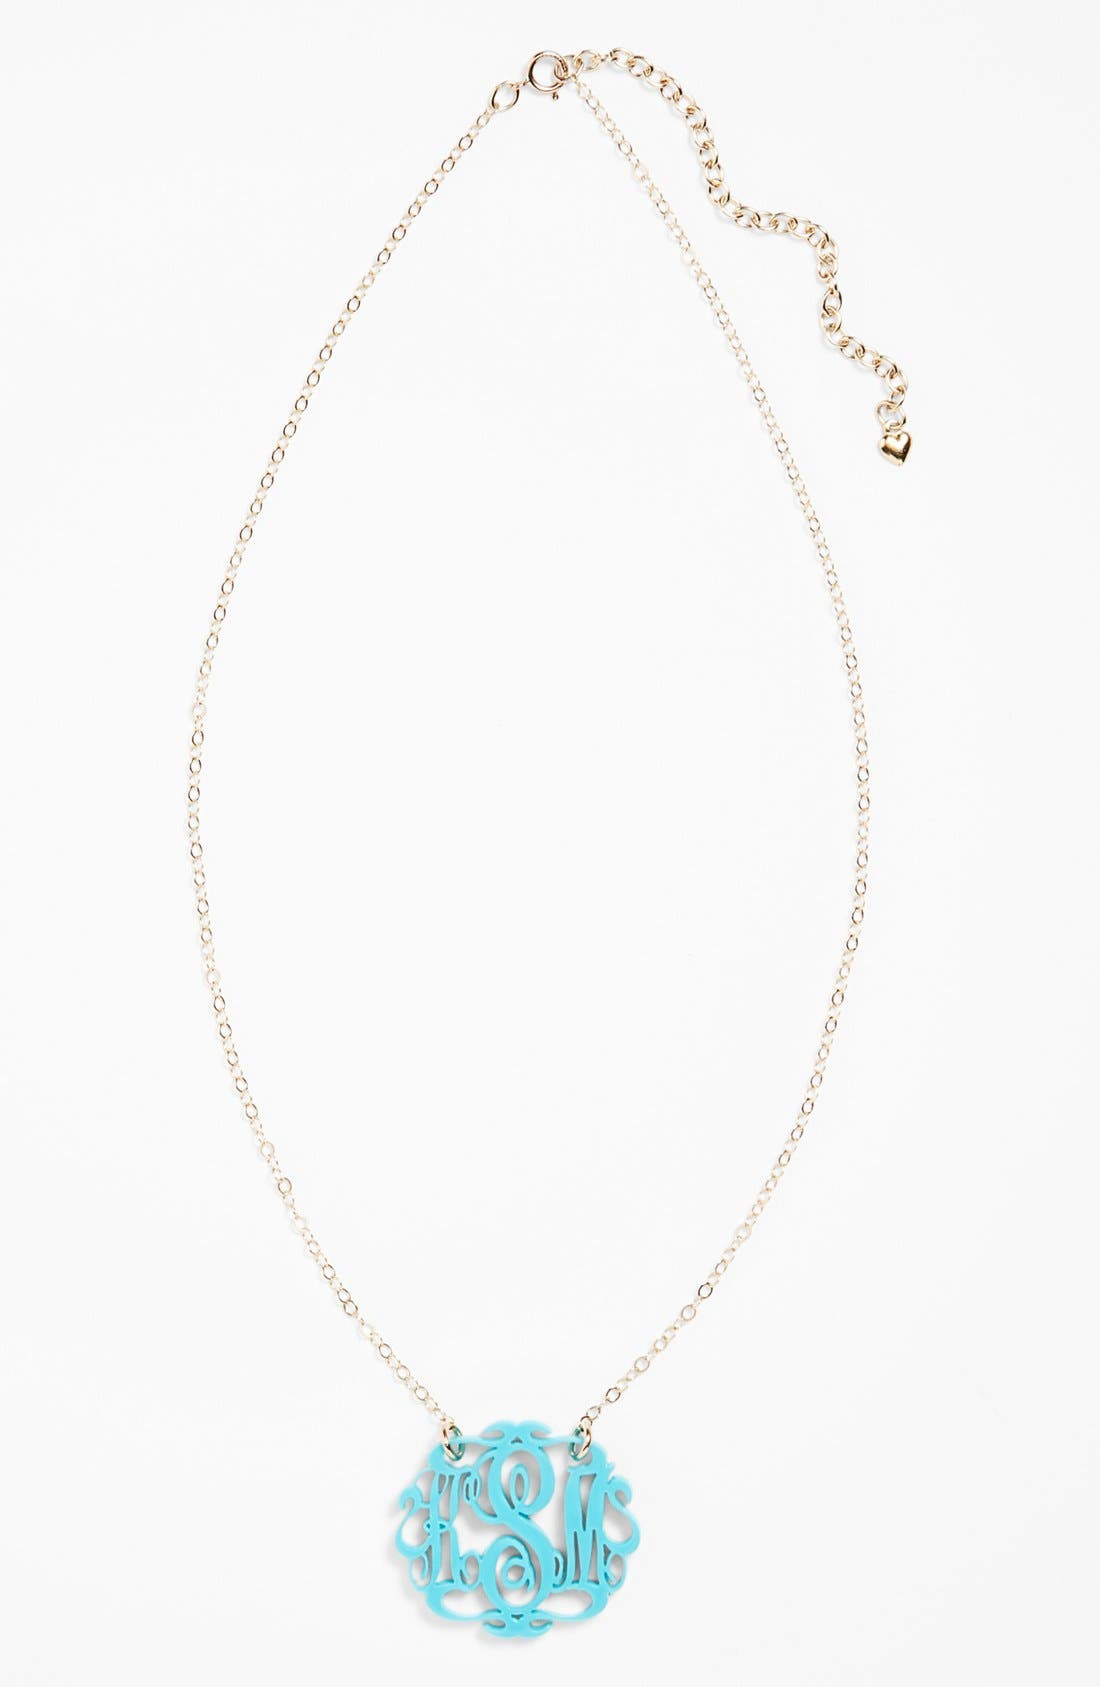 Small Oval Personalized Monogram Pendant Necklace,                         Main,                         color, ROBINS EGG/ GOLD